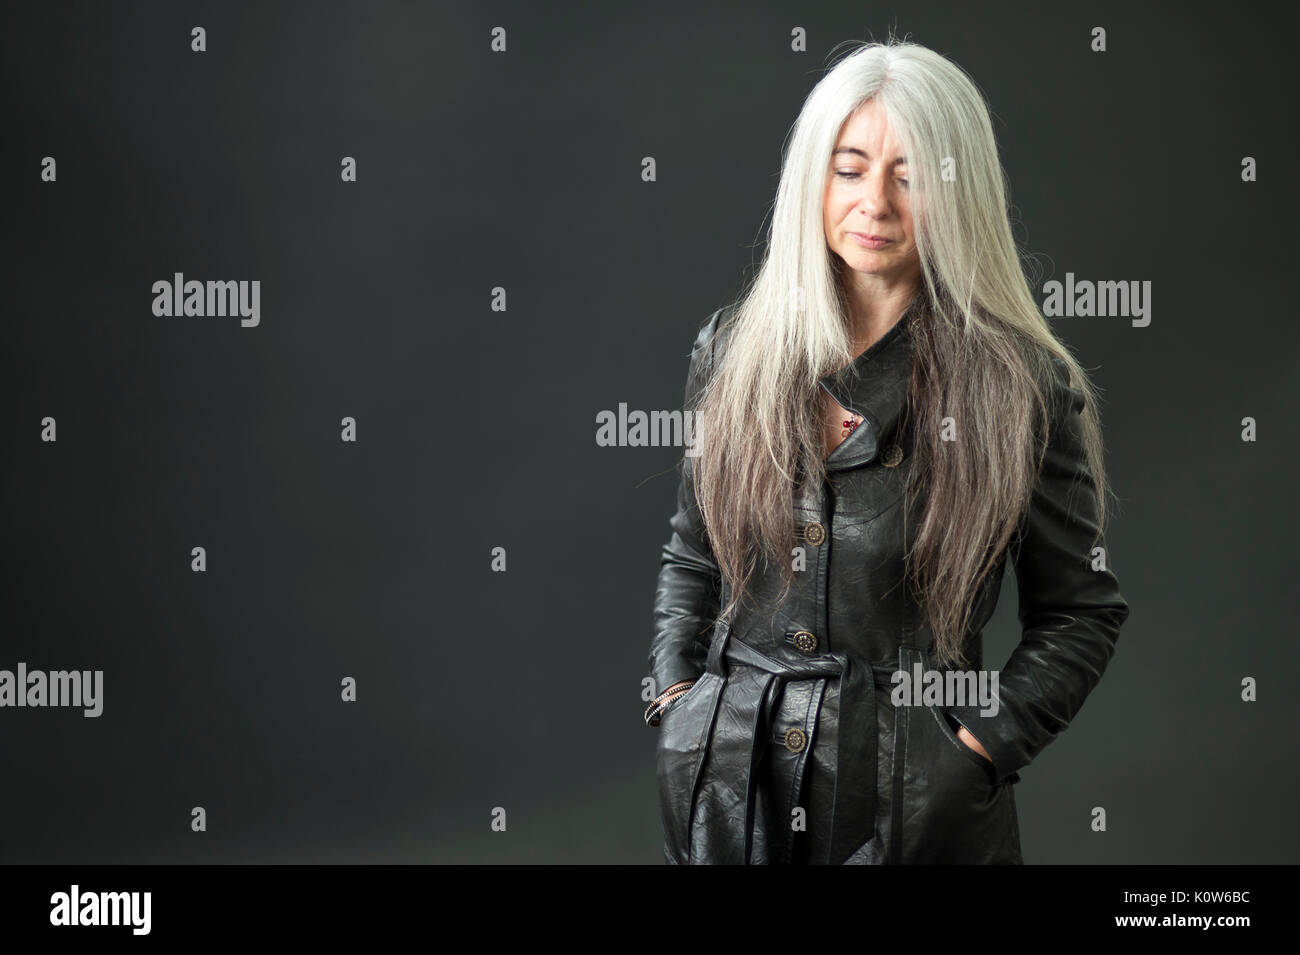 evelyn glennie deafness essay Diaorg/wiki/evelyn_glennie fromwikipedia,thefreeencyclopedia glennie contends that deafness is largely ^ glennie, evelyn (1993) hearing essay.